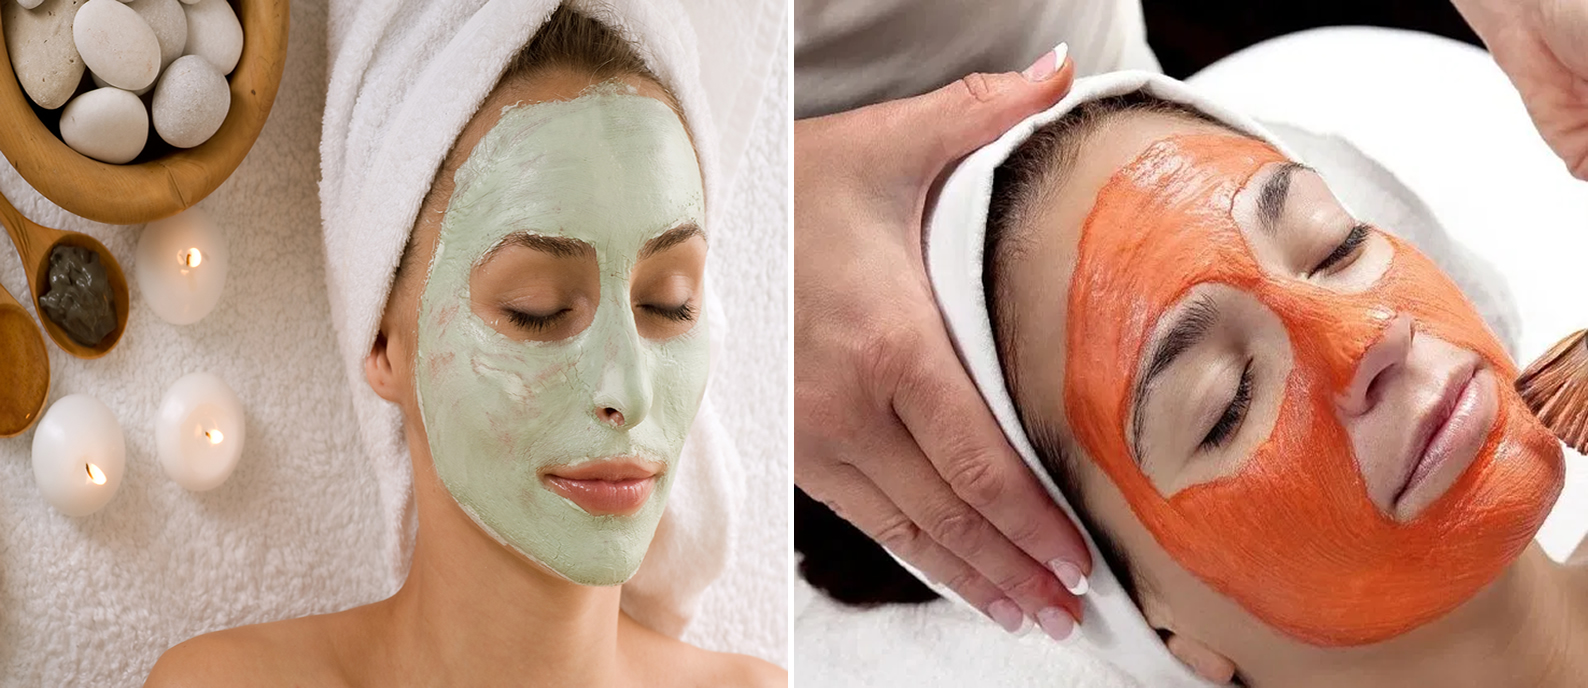 Cucumber And Tomato Face Packs For Crystal Clear Skin